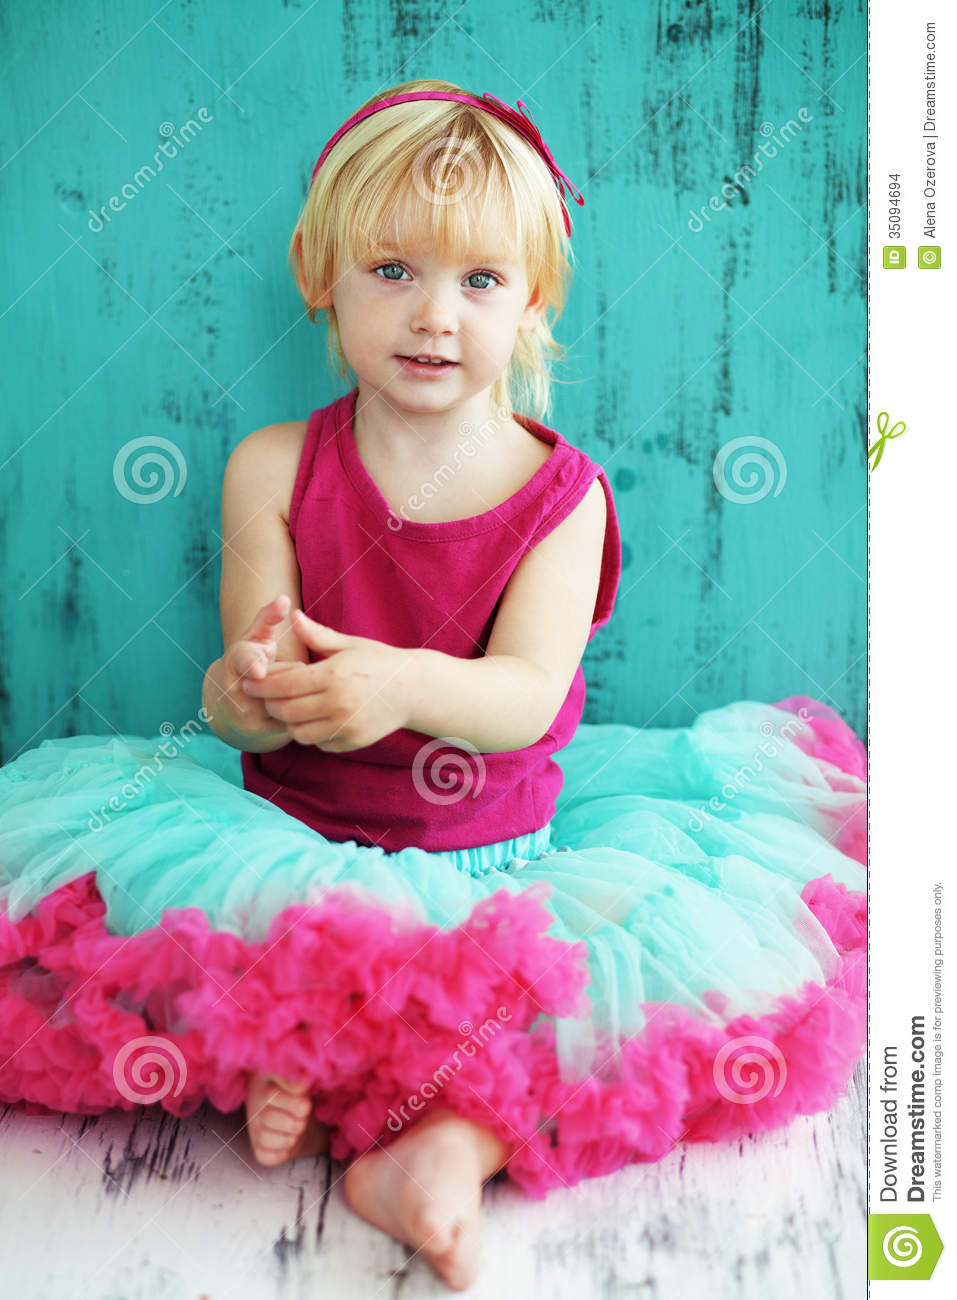 pretty child stock photo. image of dress, person, bright - 35094694